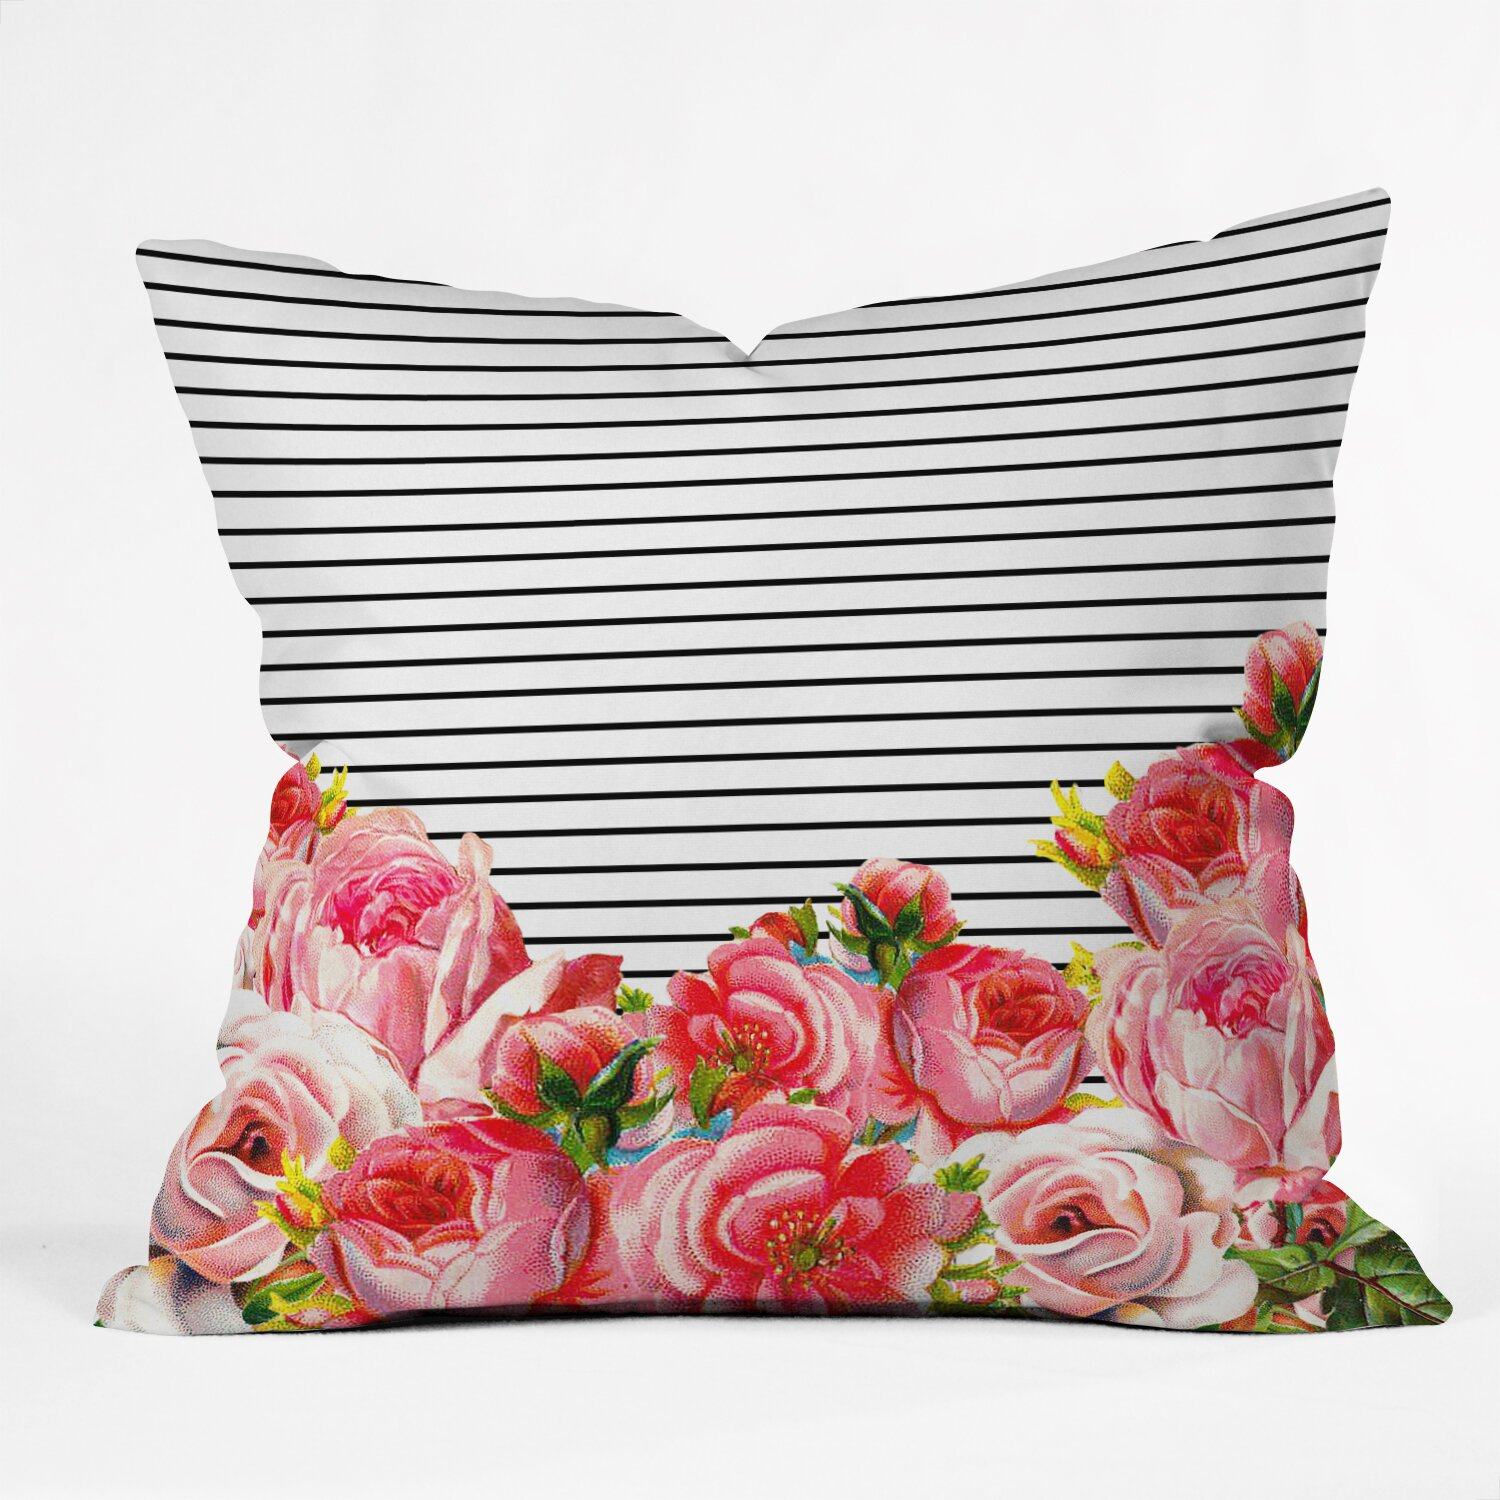 Decorative Pillows With Stripes : Brayden Studio Delaughter Bold Floral and Stripes Throw Pillow & Reviews Wayfair